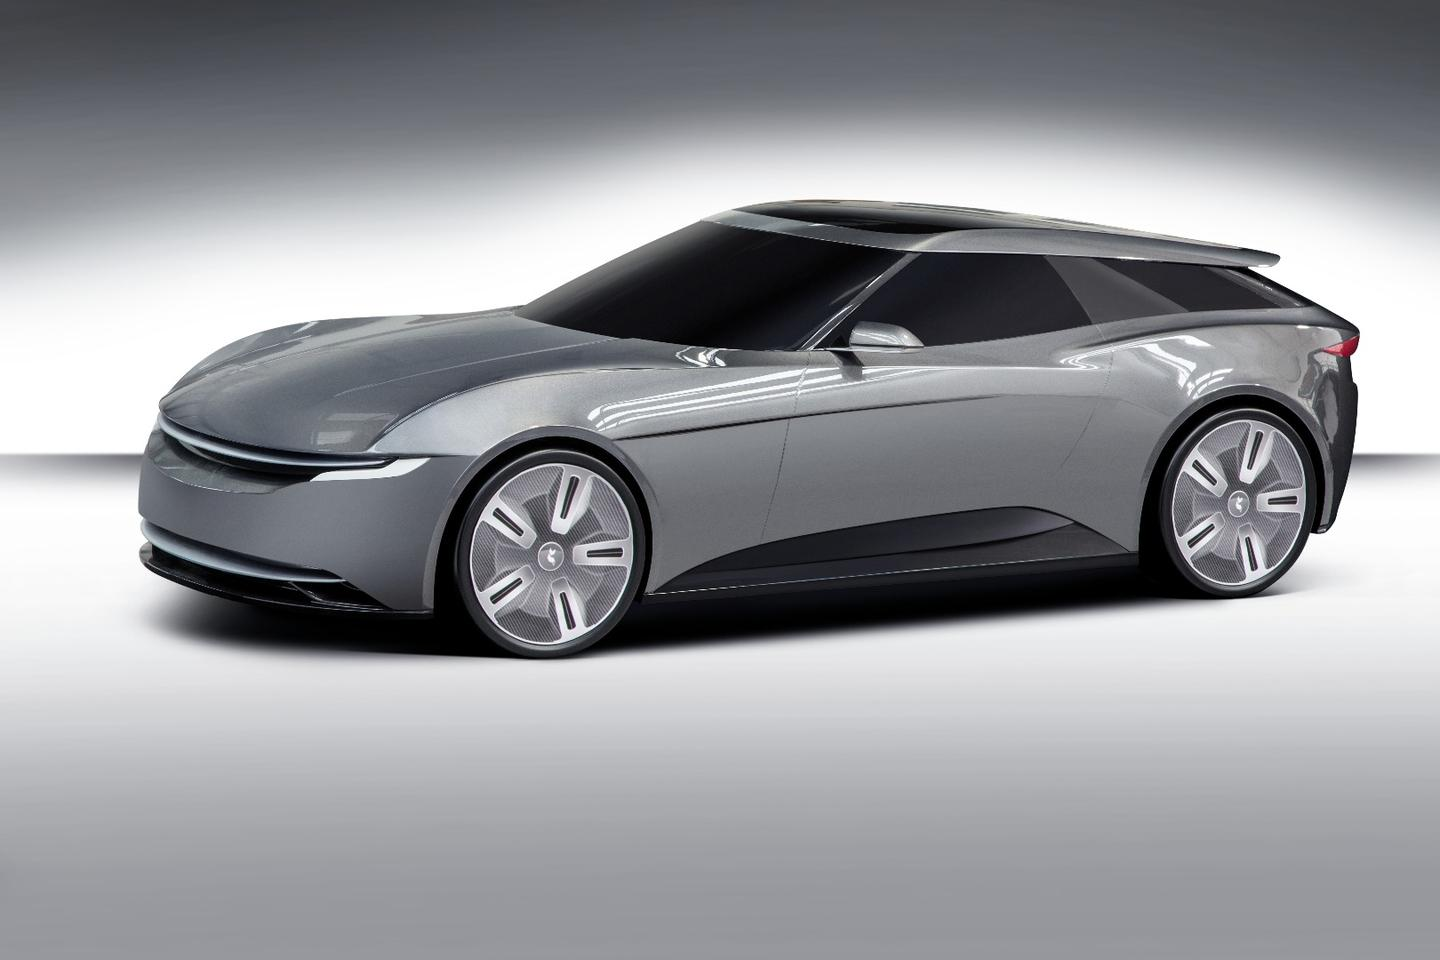 The Alcraft GTshooting brake is a concept for now, but that will change if DavidAlcraft gets his way